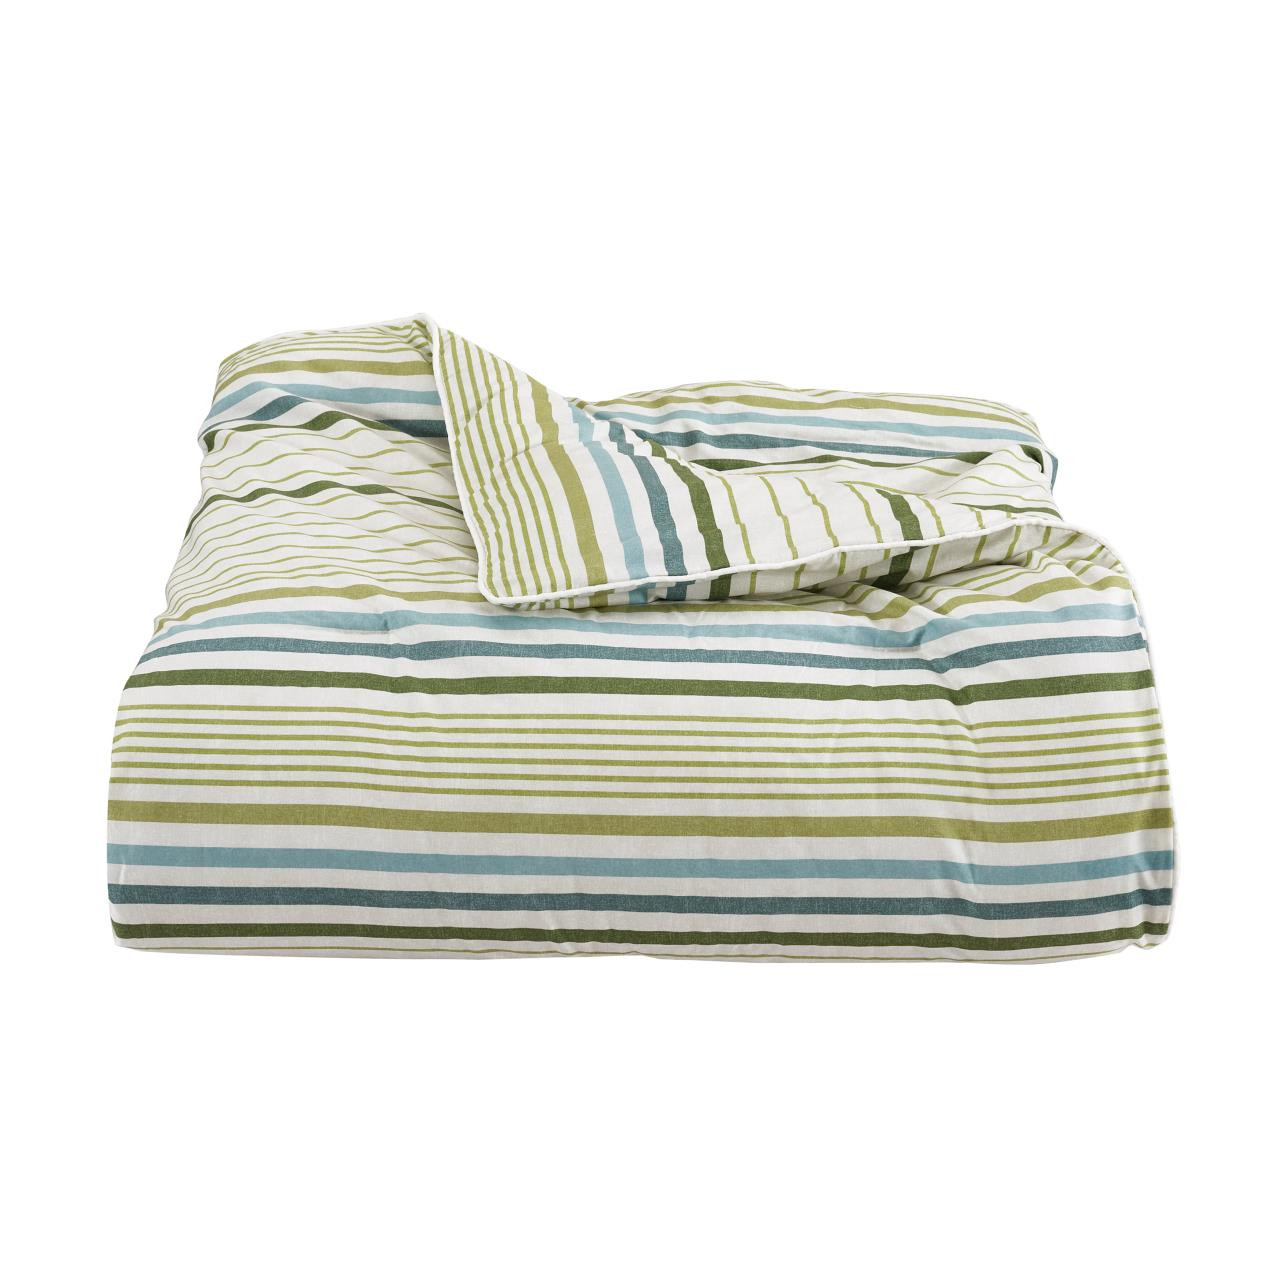 Roxanne Surf Teal Bedding Collection -